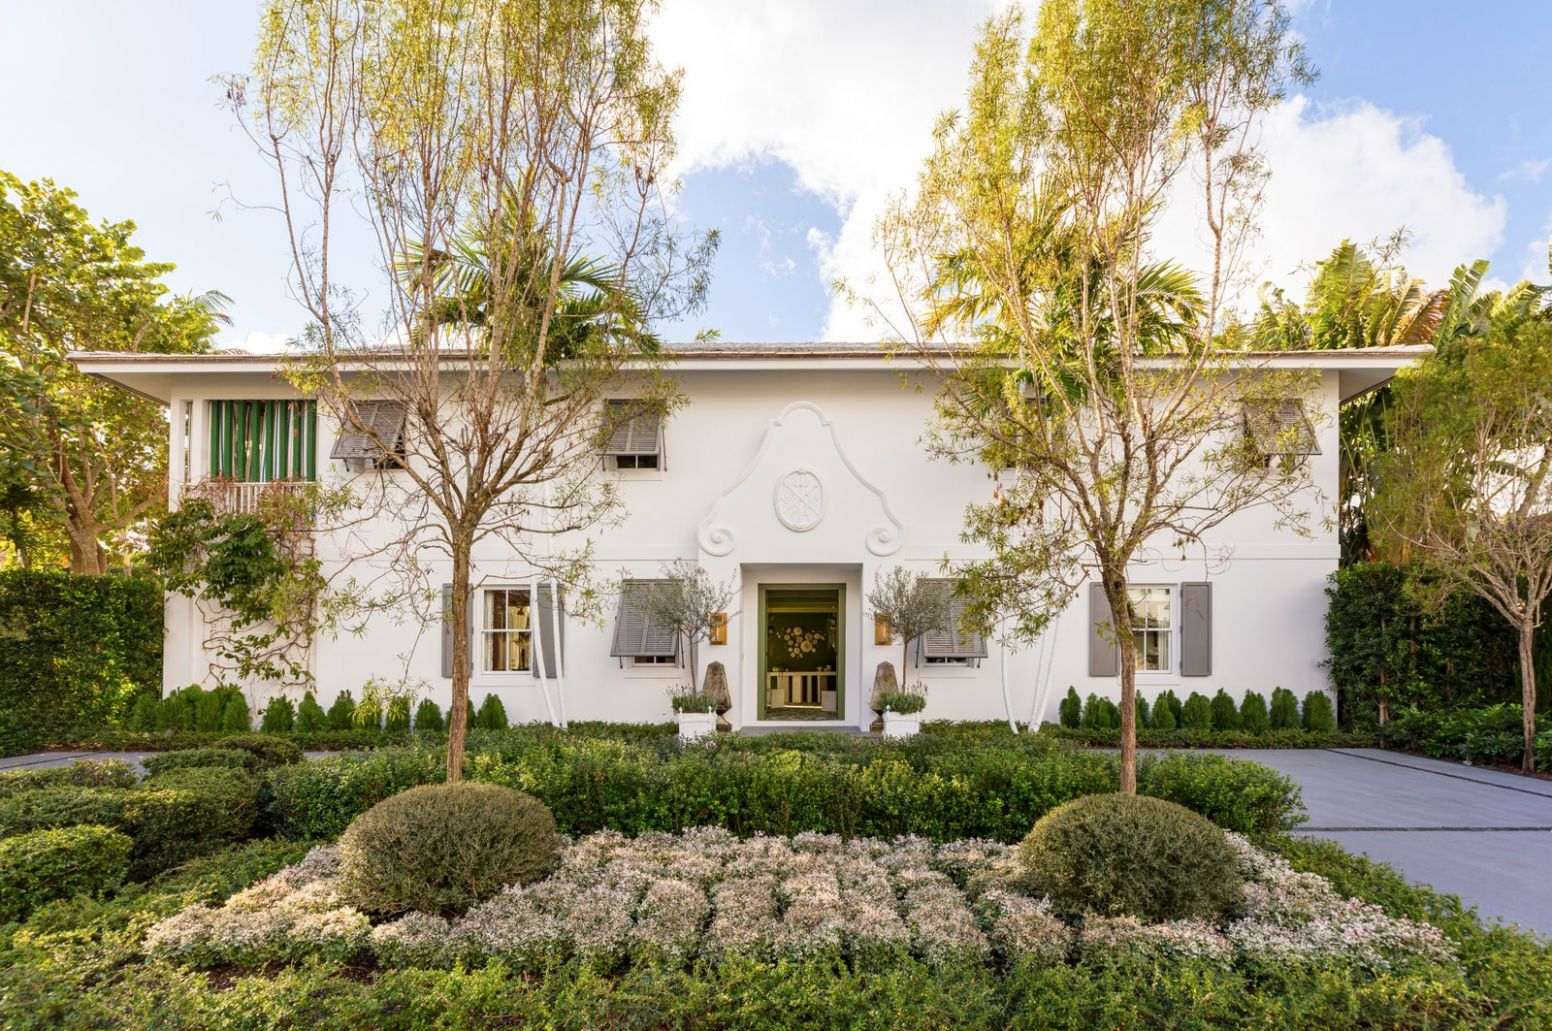 Tour the Kips Bay Show House Palm Beach   Architectural Digest - inspiration house in west palm beach